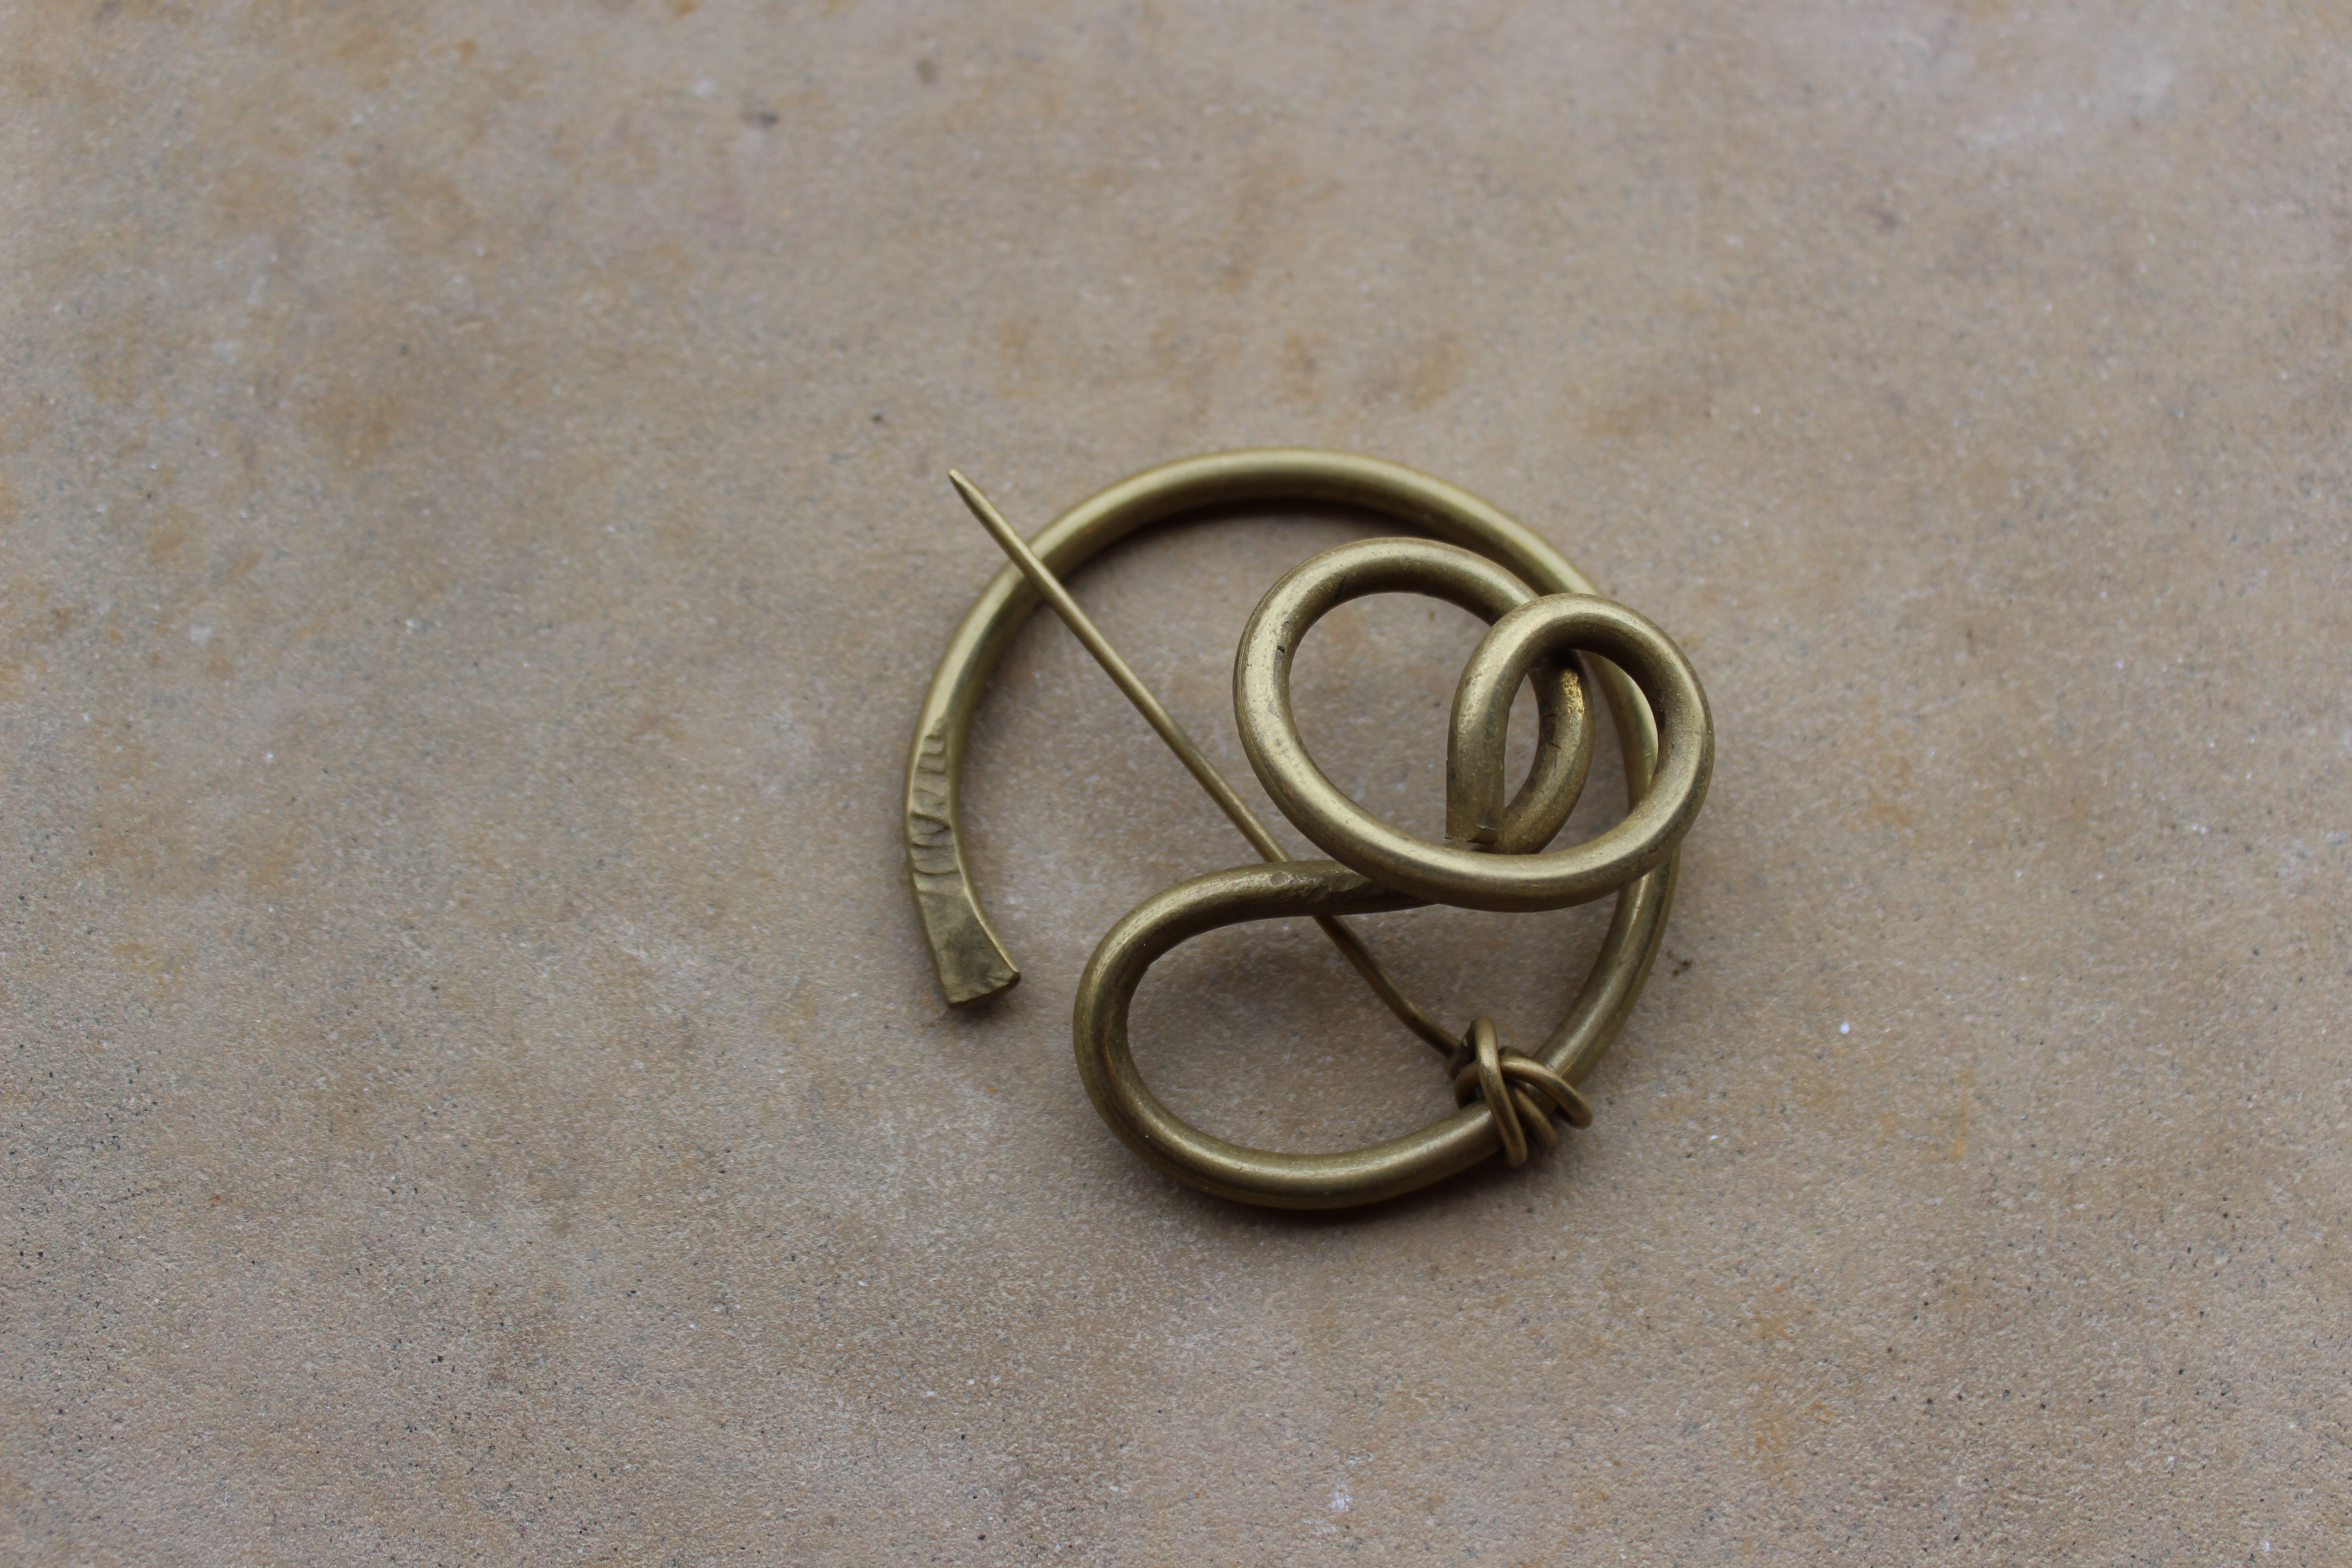 Brooch Jewellery & Silversmithing courses at Cambridge Art Makers